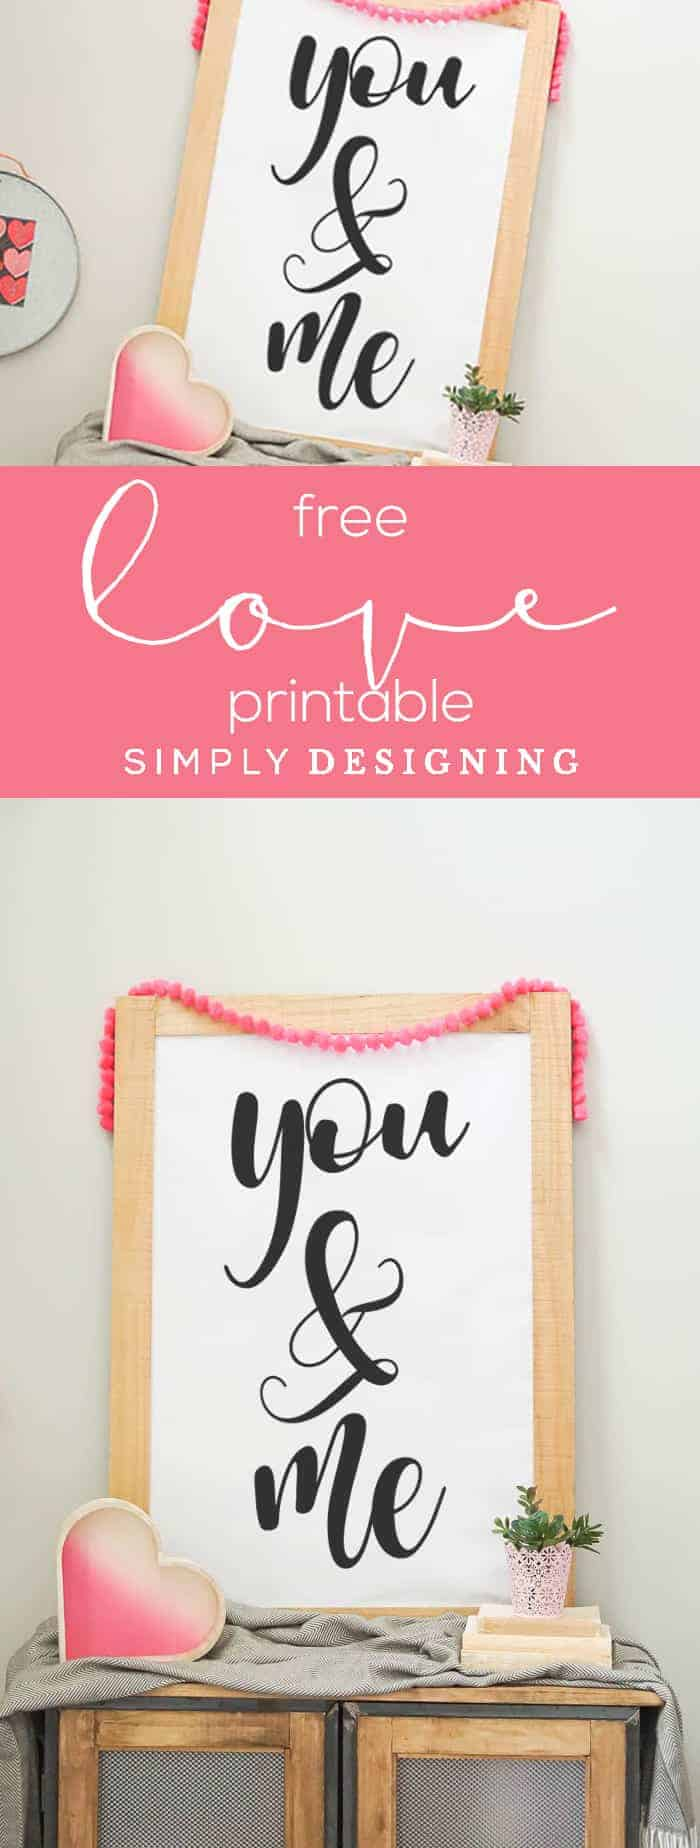 Free Valentines Day Print - Free Master Bedroom Print - Free Love Print - You and Me Printable - Simply Designing